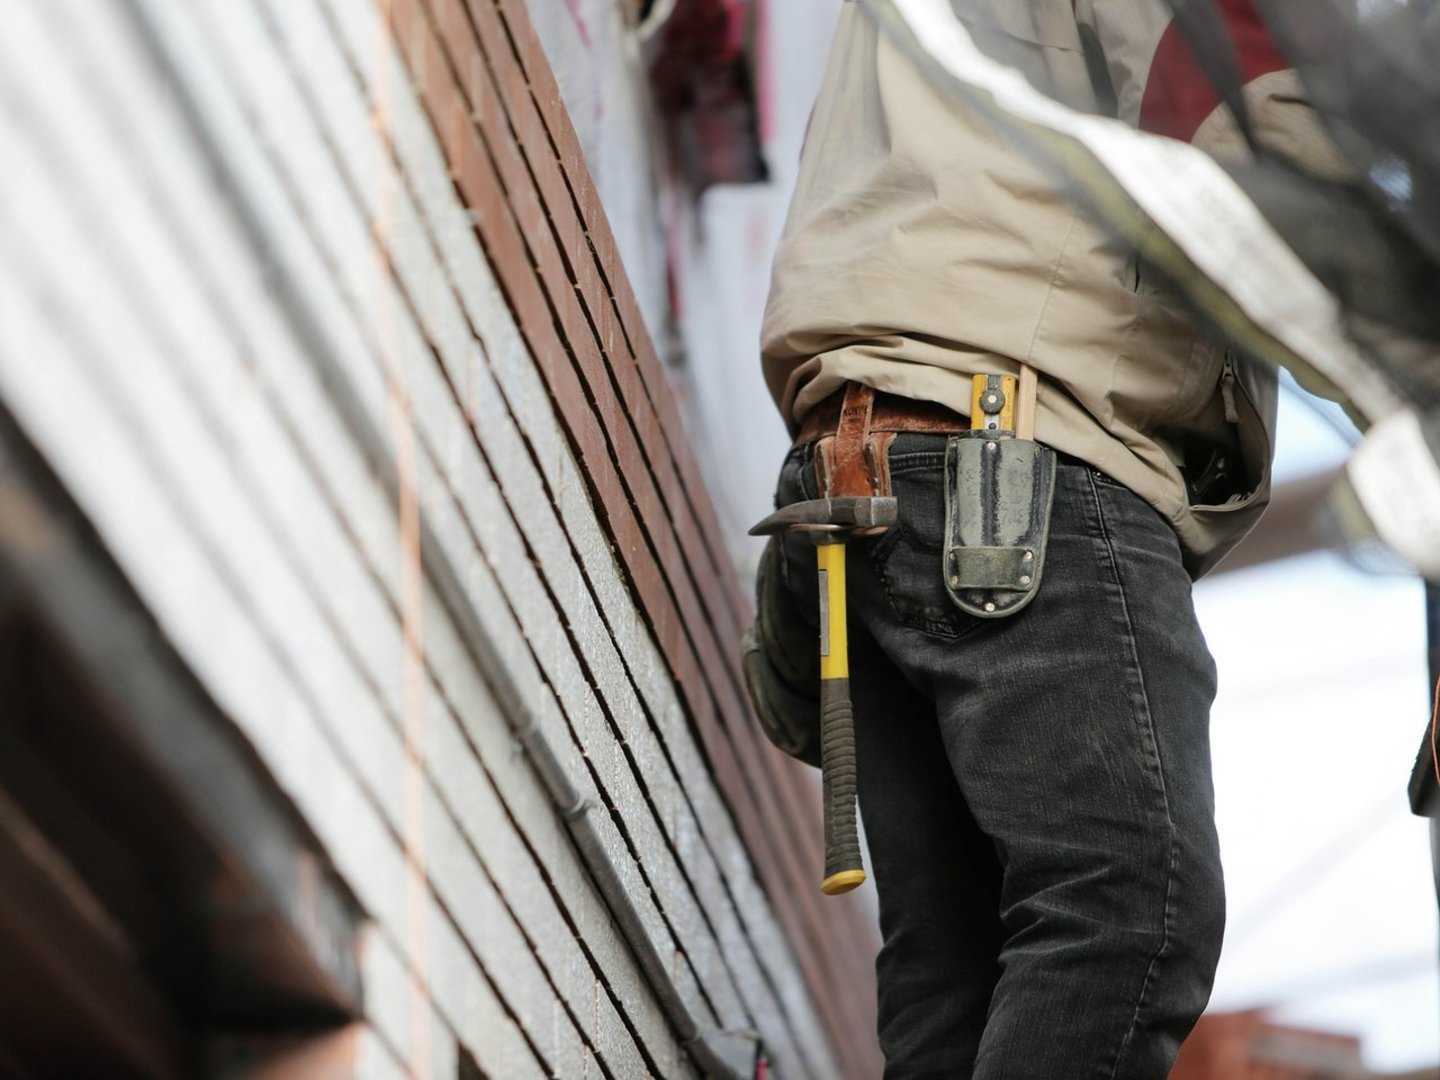 Contact Peter Vickers Insurance Brokers for your Tradesman's Insurance enquiry. We will assist you from the start to finish to help you find the best insurance protection to suit your needs.